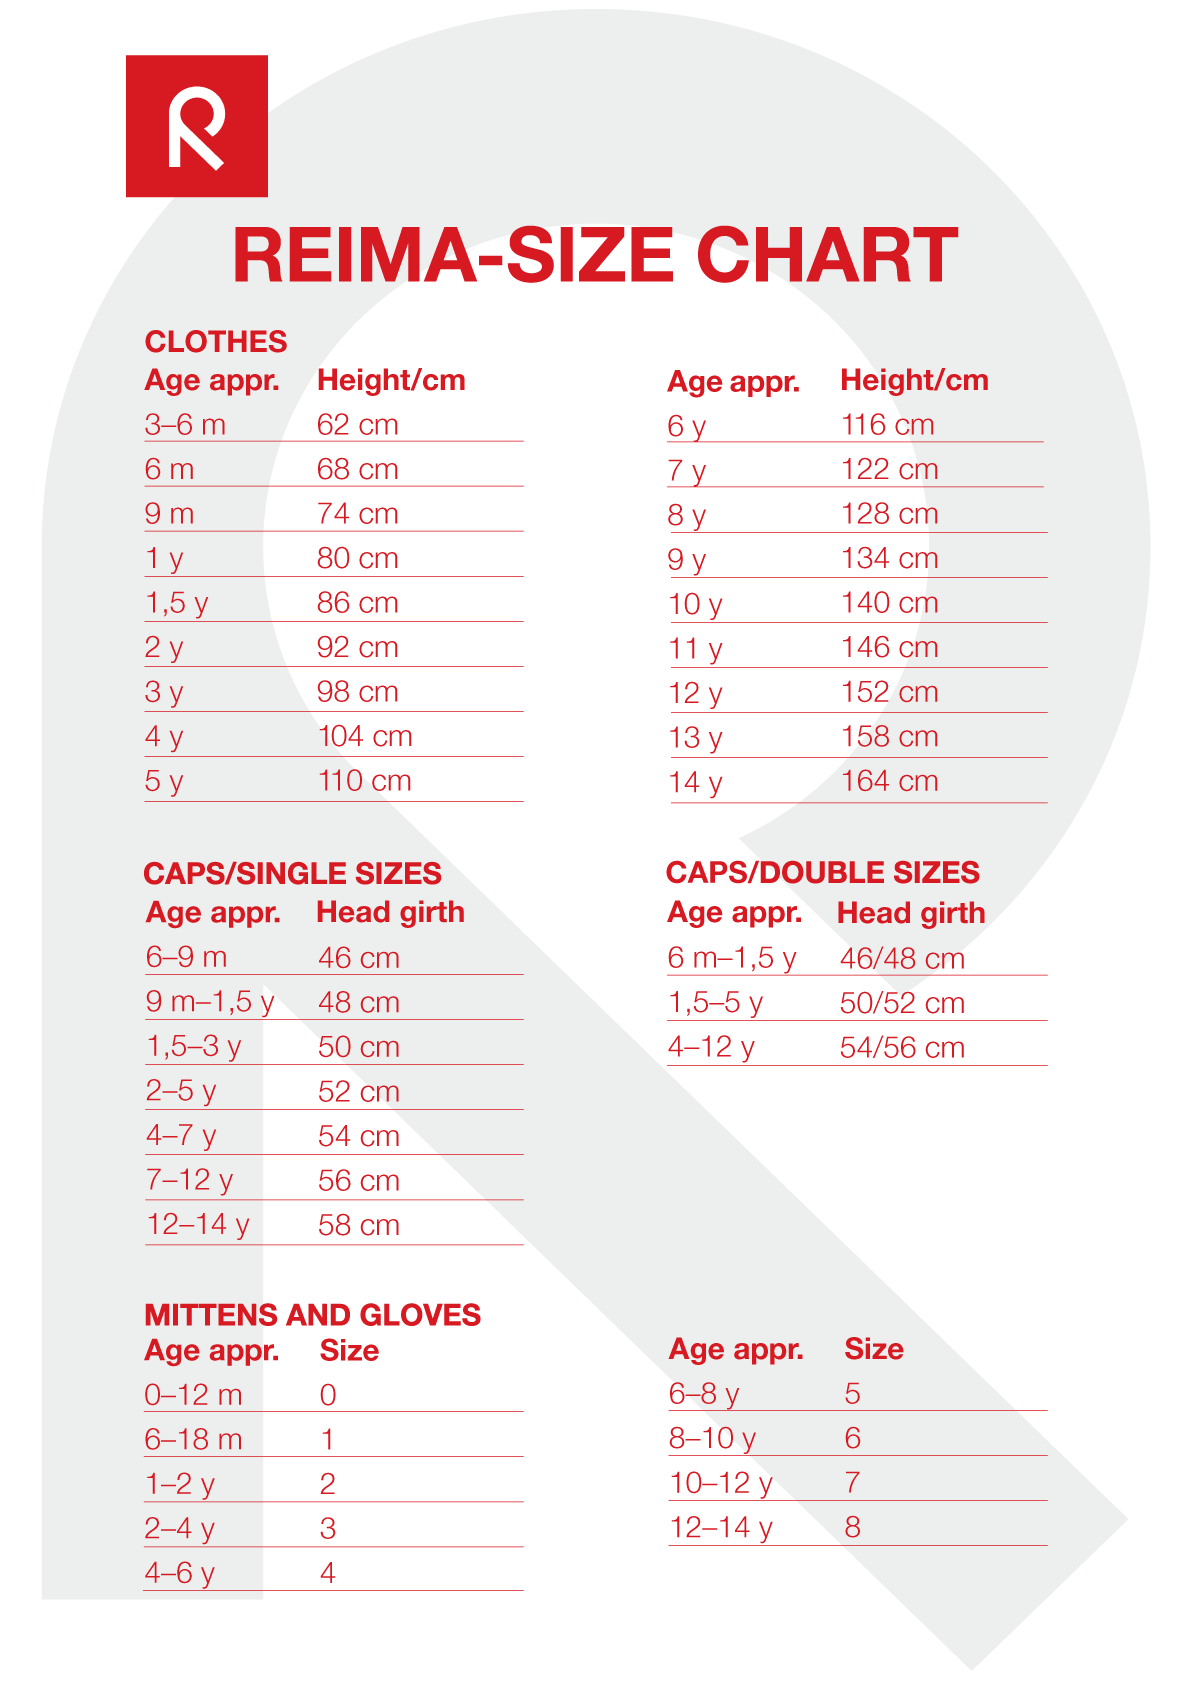 Reima Clothing Size Chart For Babies, Kids and Teens